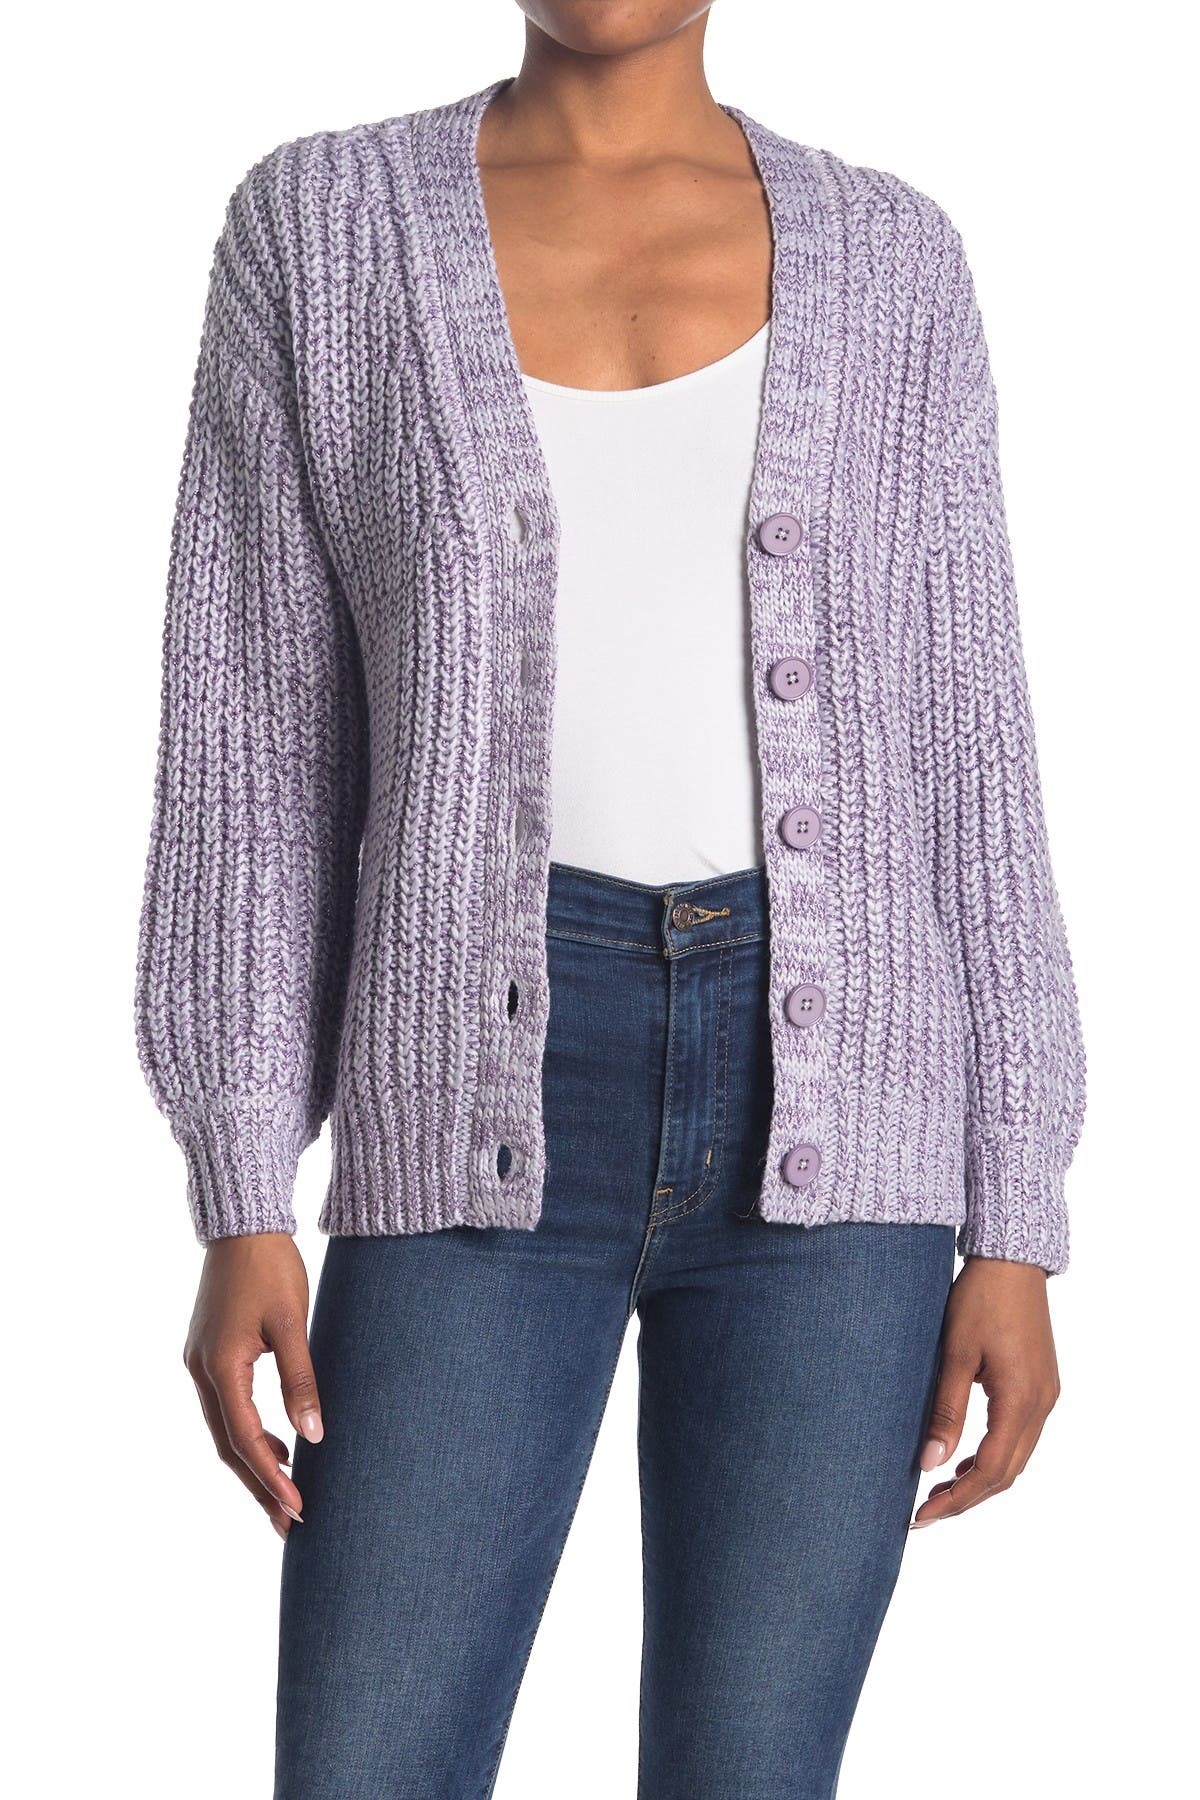 Image of MODCLOTH Warming Signs Knit Cardigan